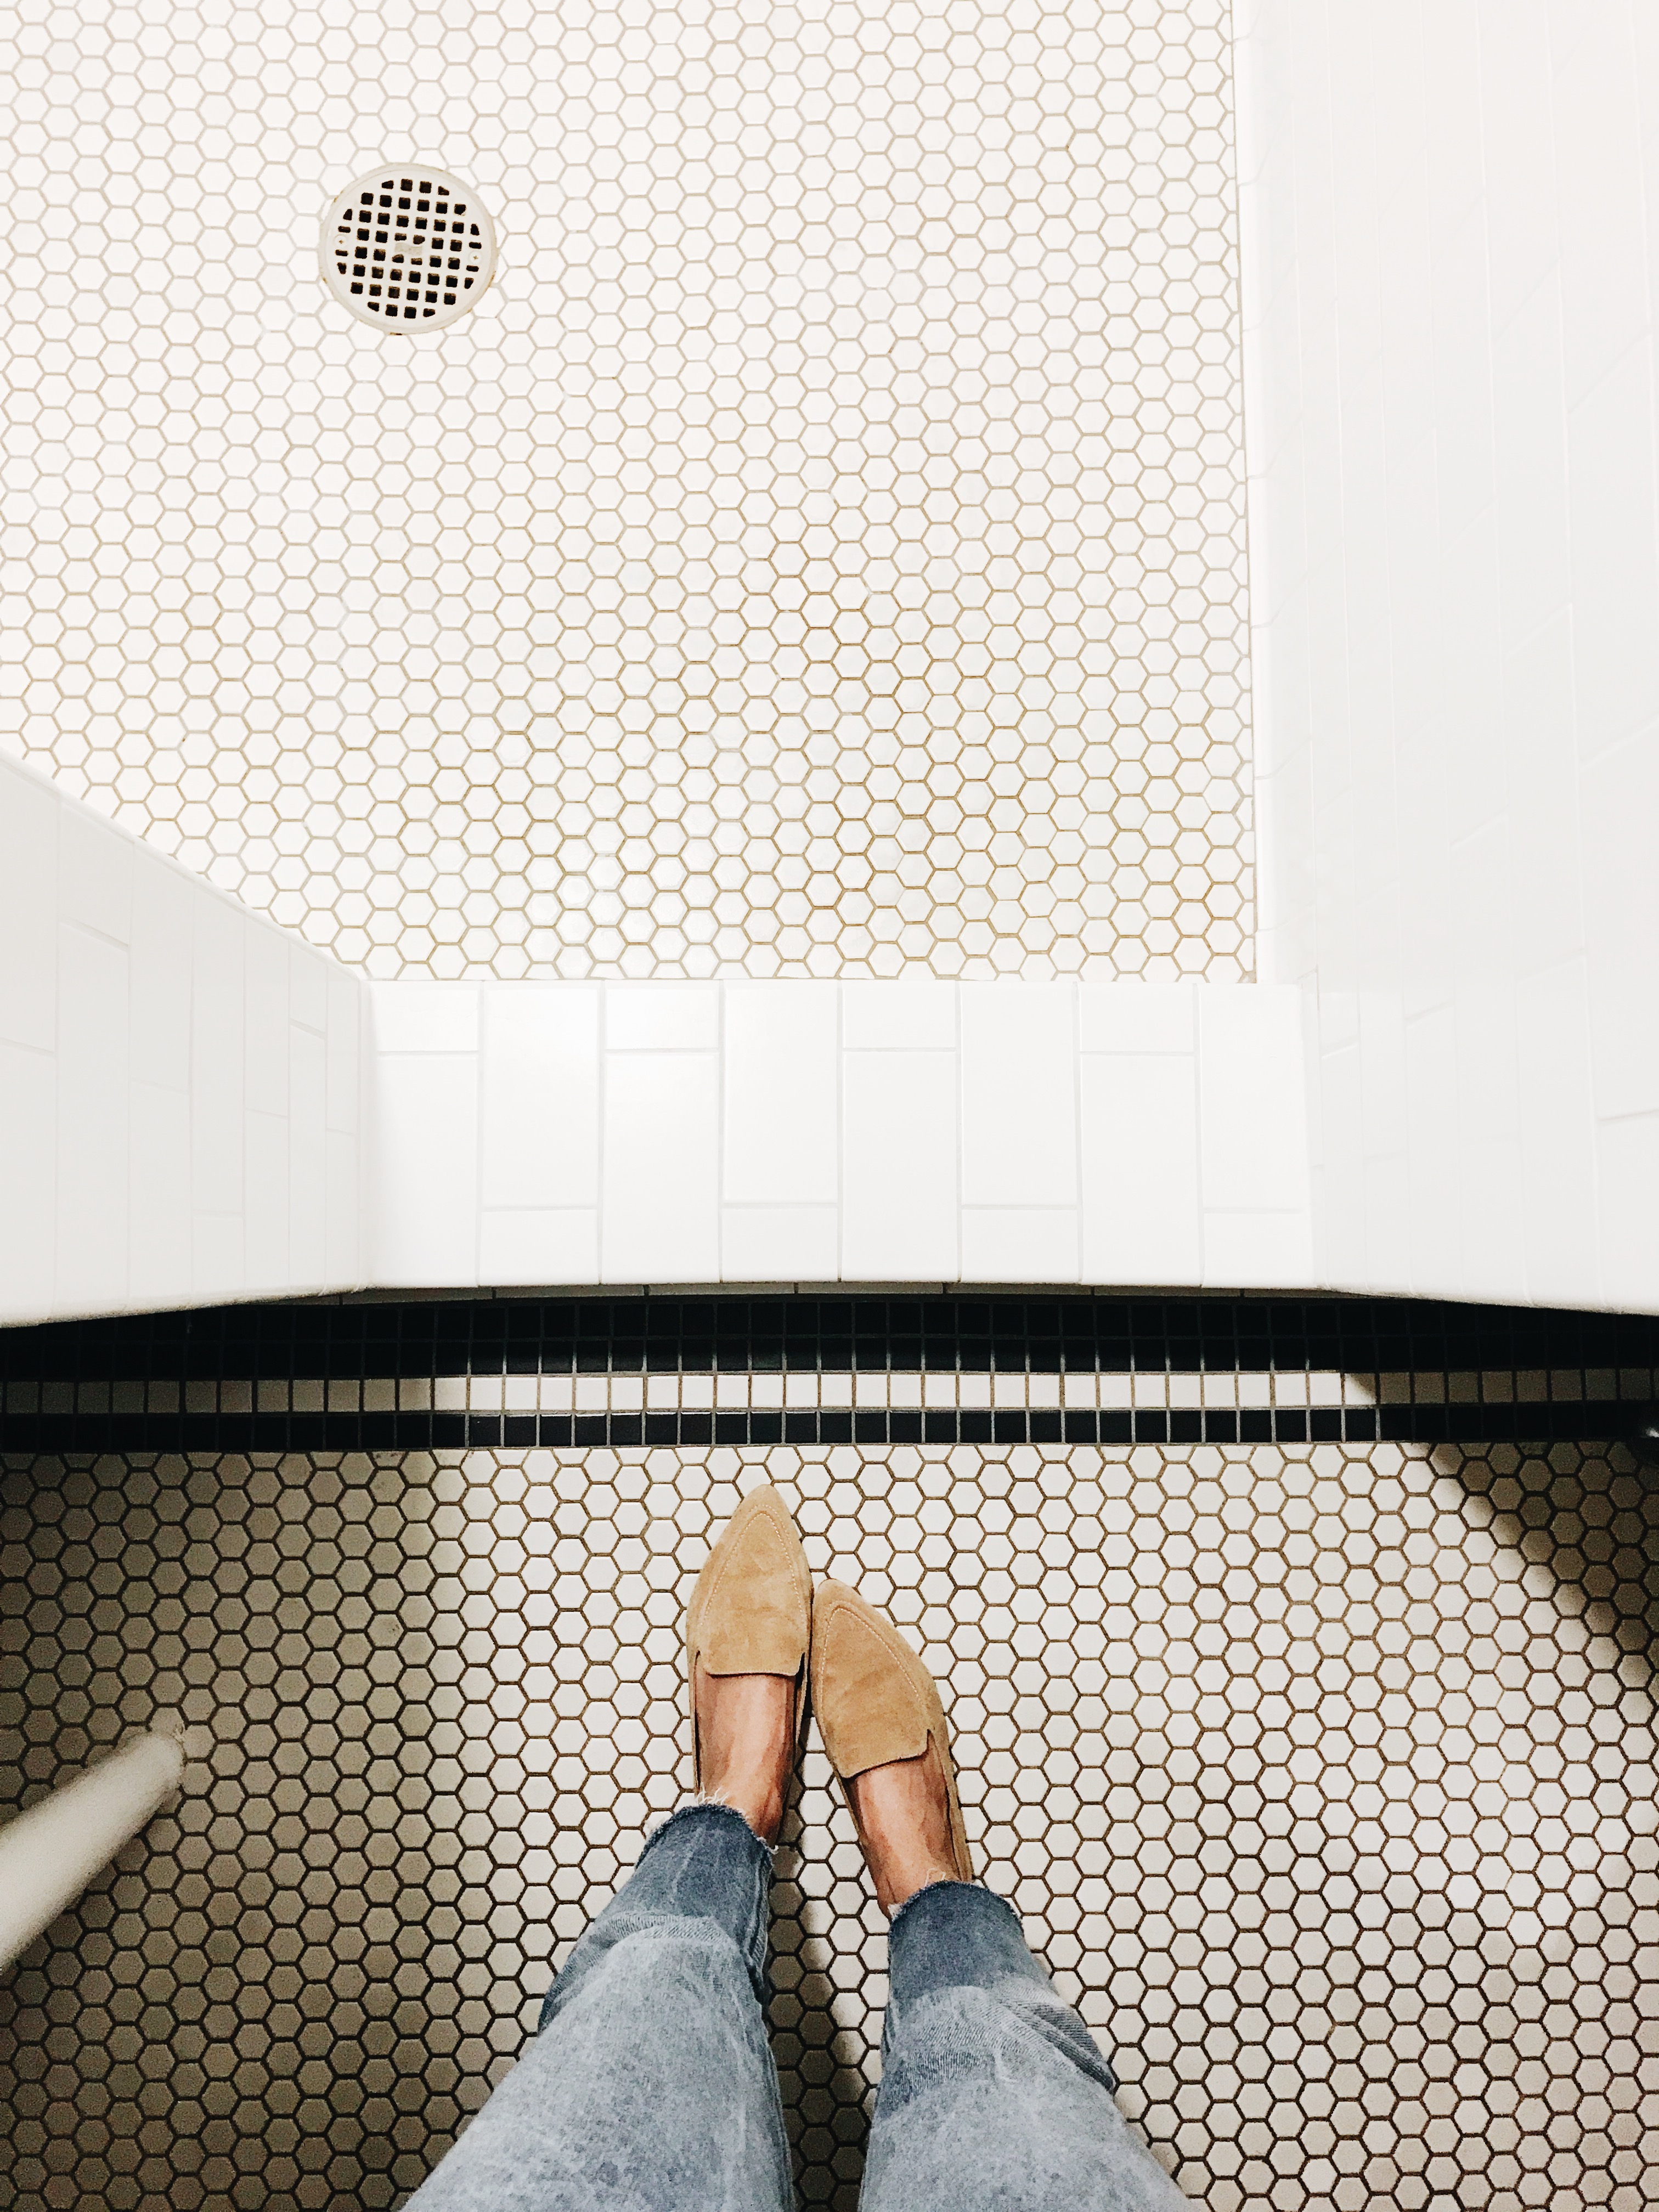 mules and tile